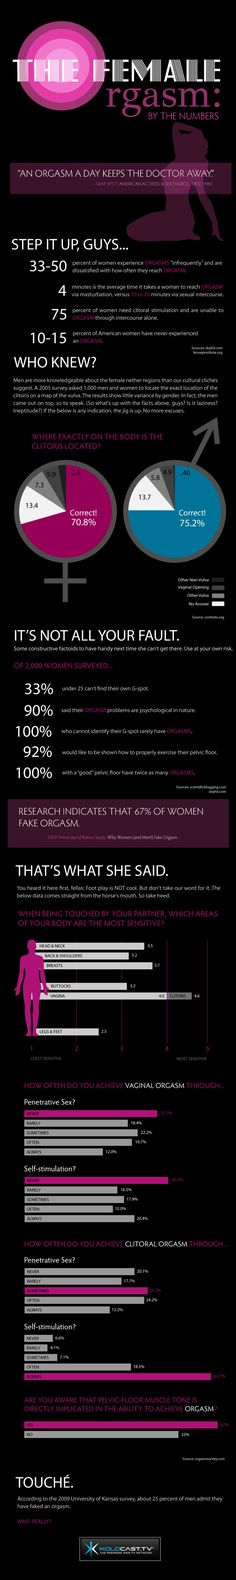 The female orgasm! What you need to know! Help it along with goodies from www.PassionBuzz.com.